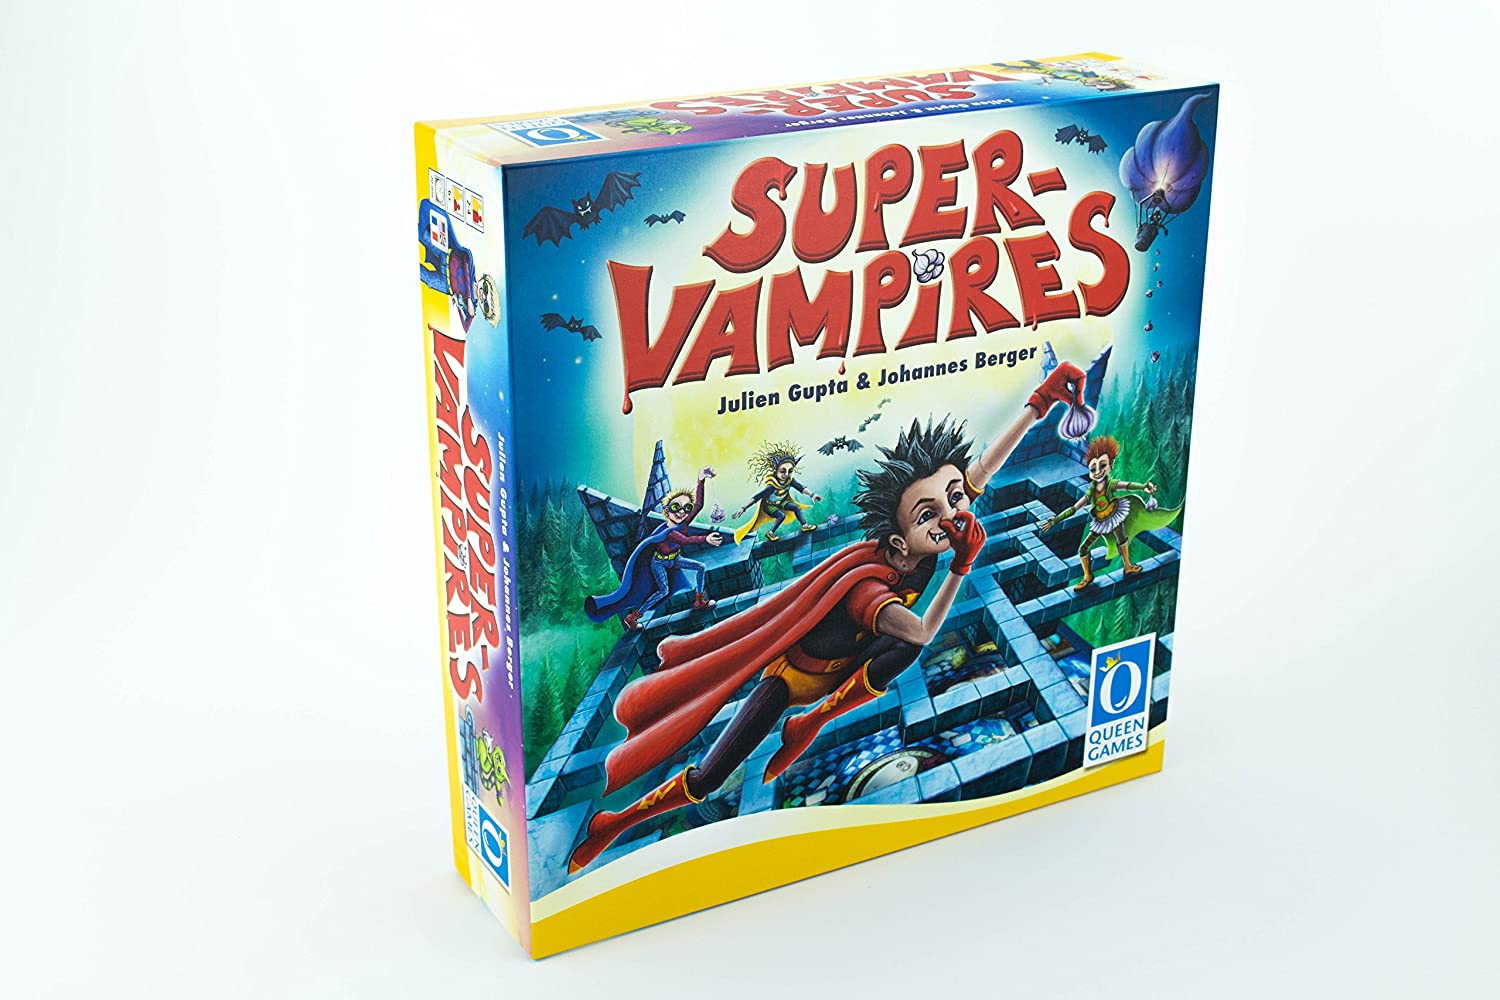 Amazon.com: Super-Vampire Board Game: Toys & Games